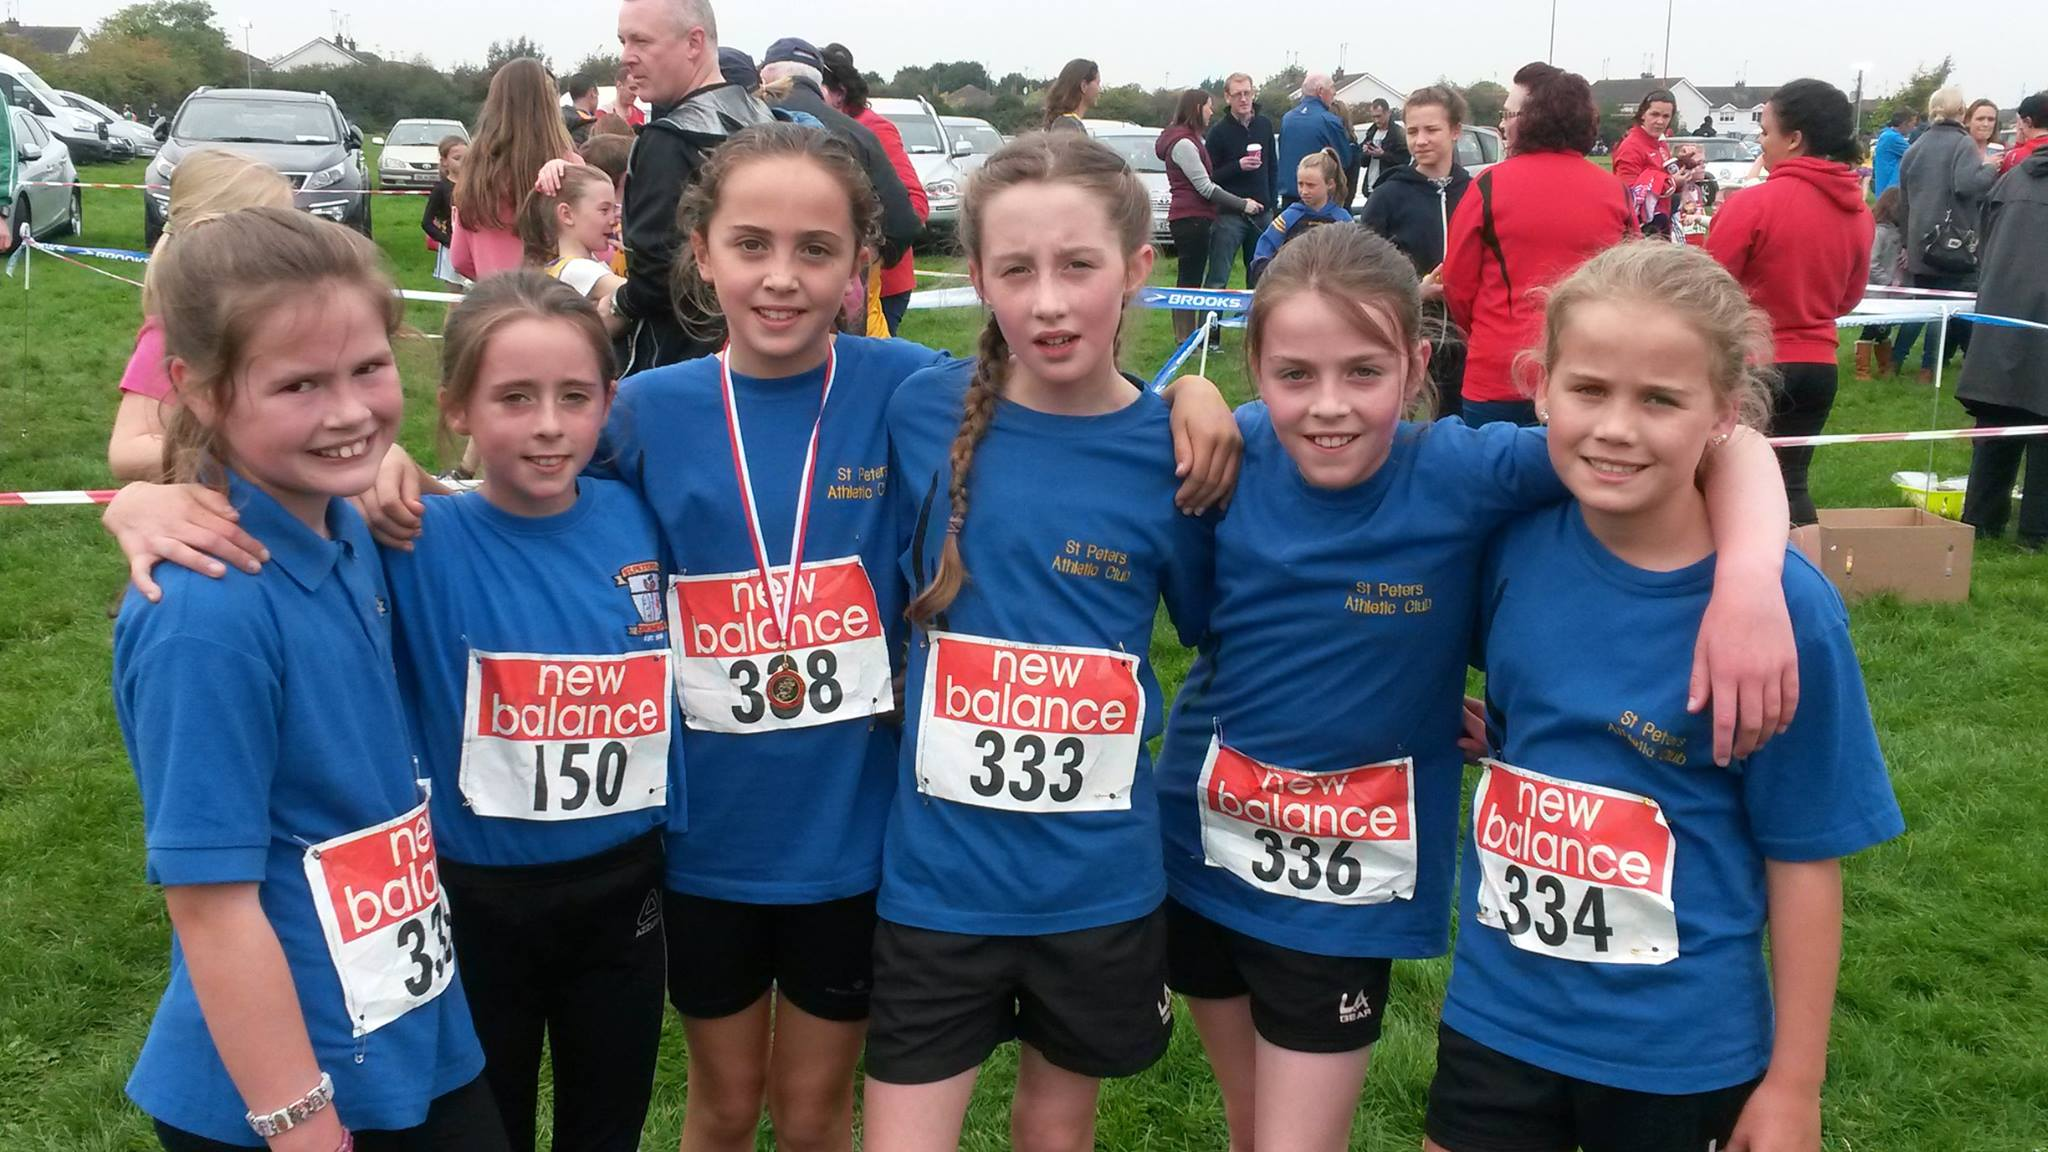 U11 Girls' team at Louth Cross Country Championships (Drogheda, October 2015)